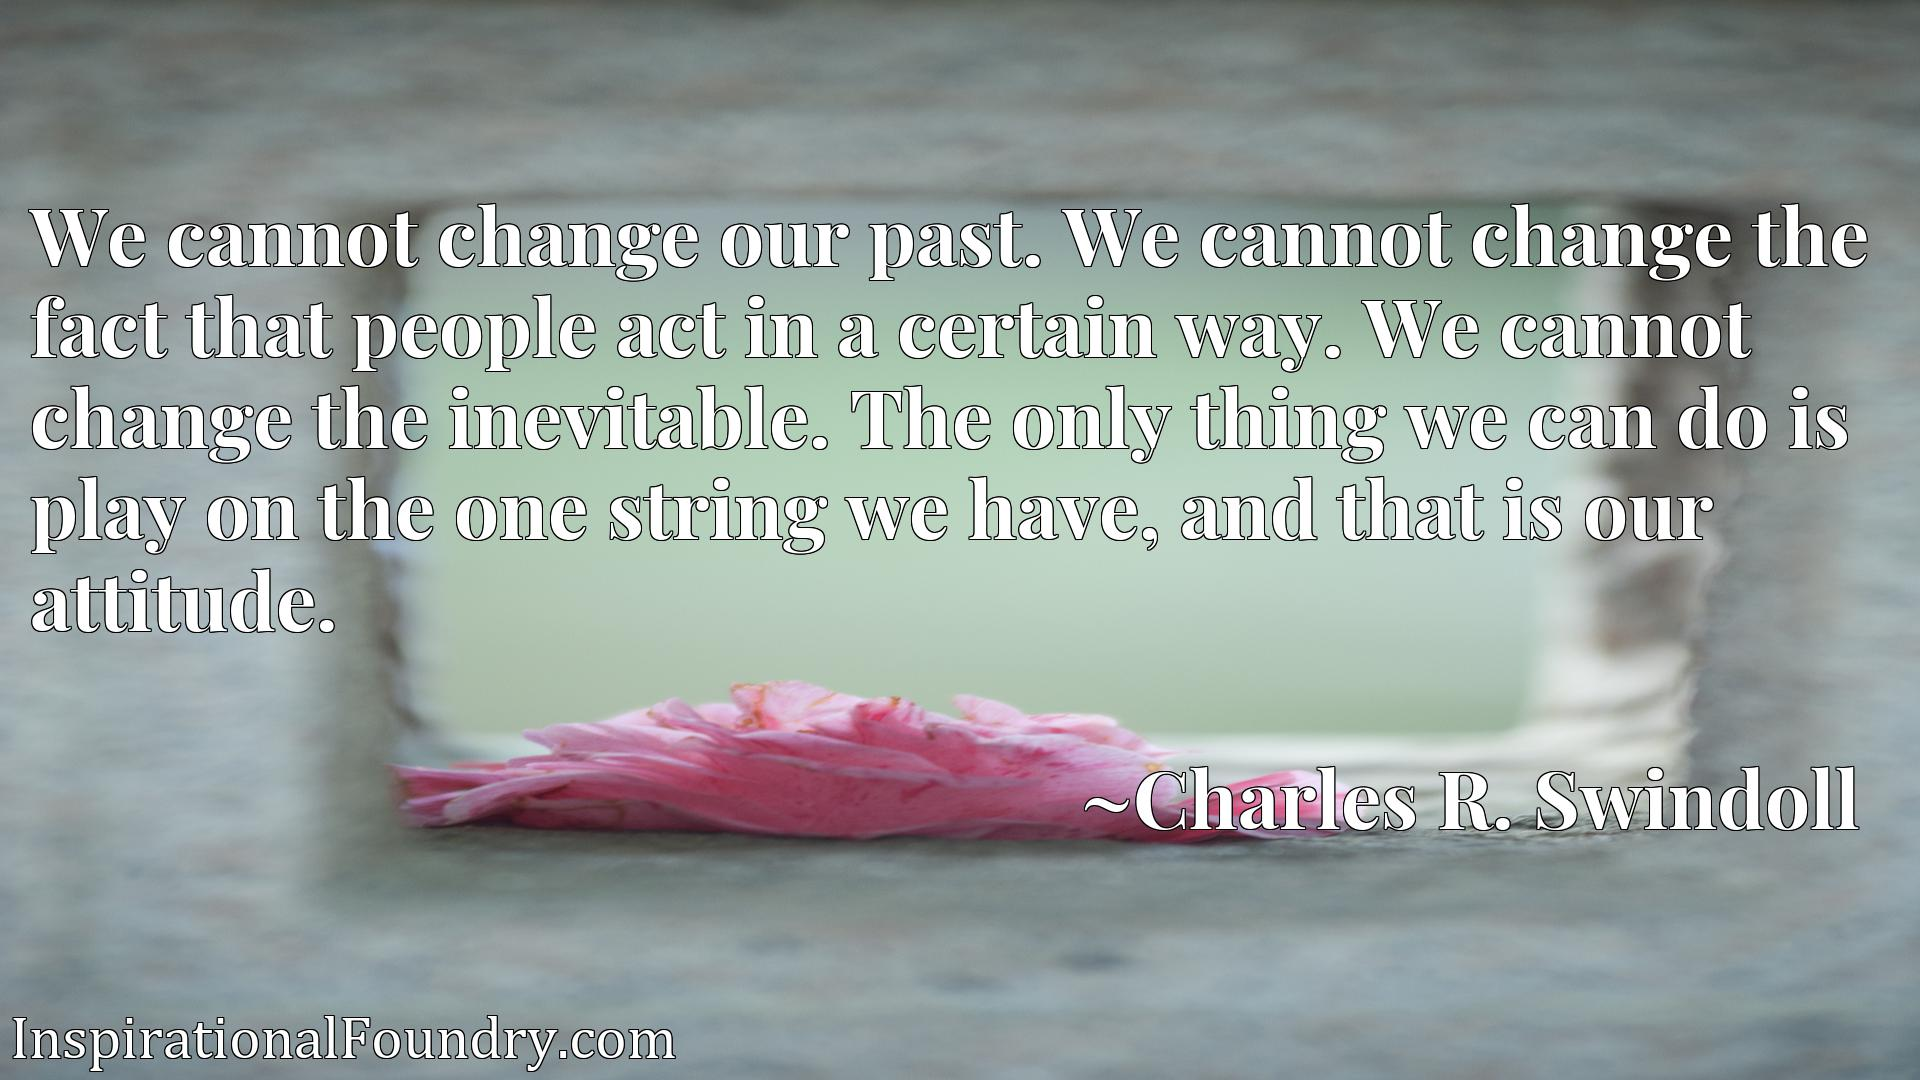 We cannot change our past. We cannot change the fact that people act in a certain way. We cannot change the inevitable. The only thing we can do is play on the one string we have, and that is our attitude.